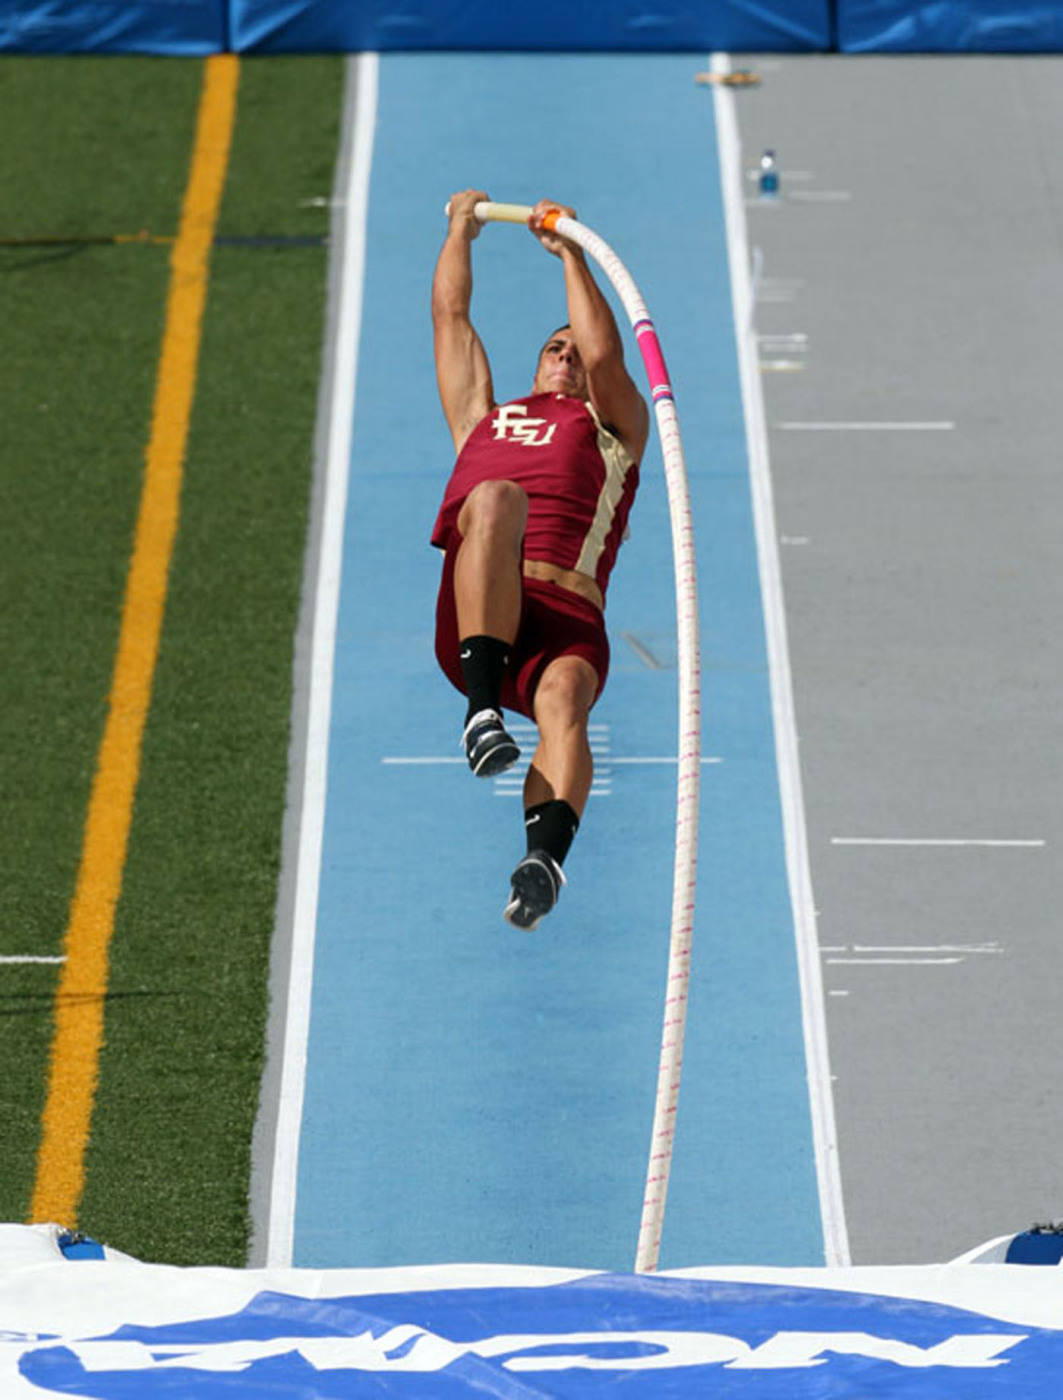 Gonzalo Barroilhet competes in the decathlon pole vault.